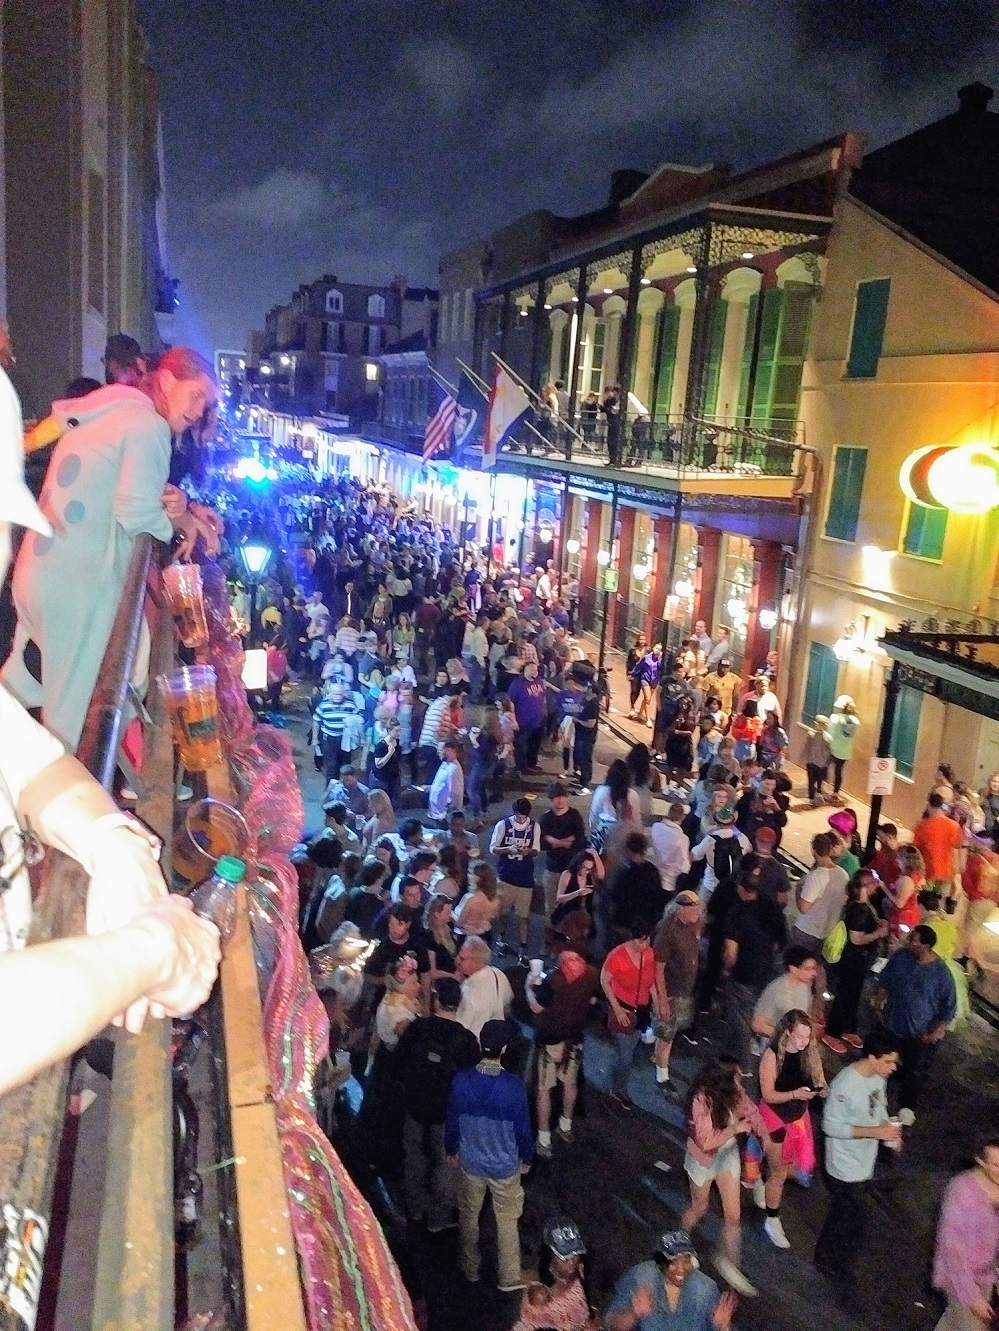 Bienville Street from the Balcony at Bourbon Cowboy